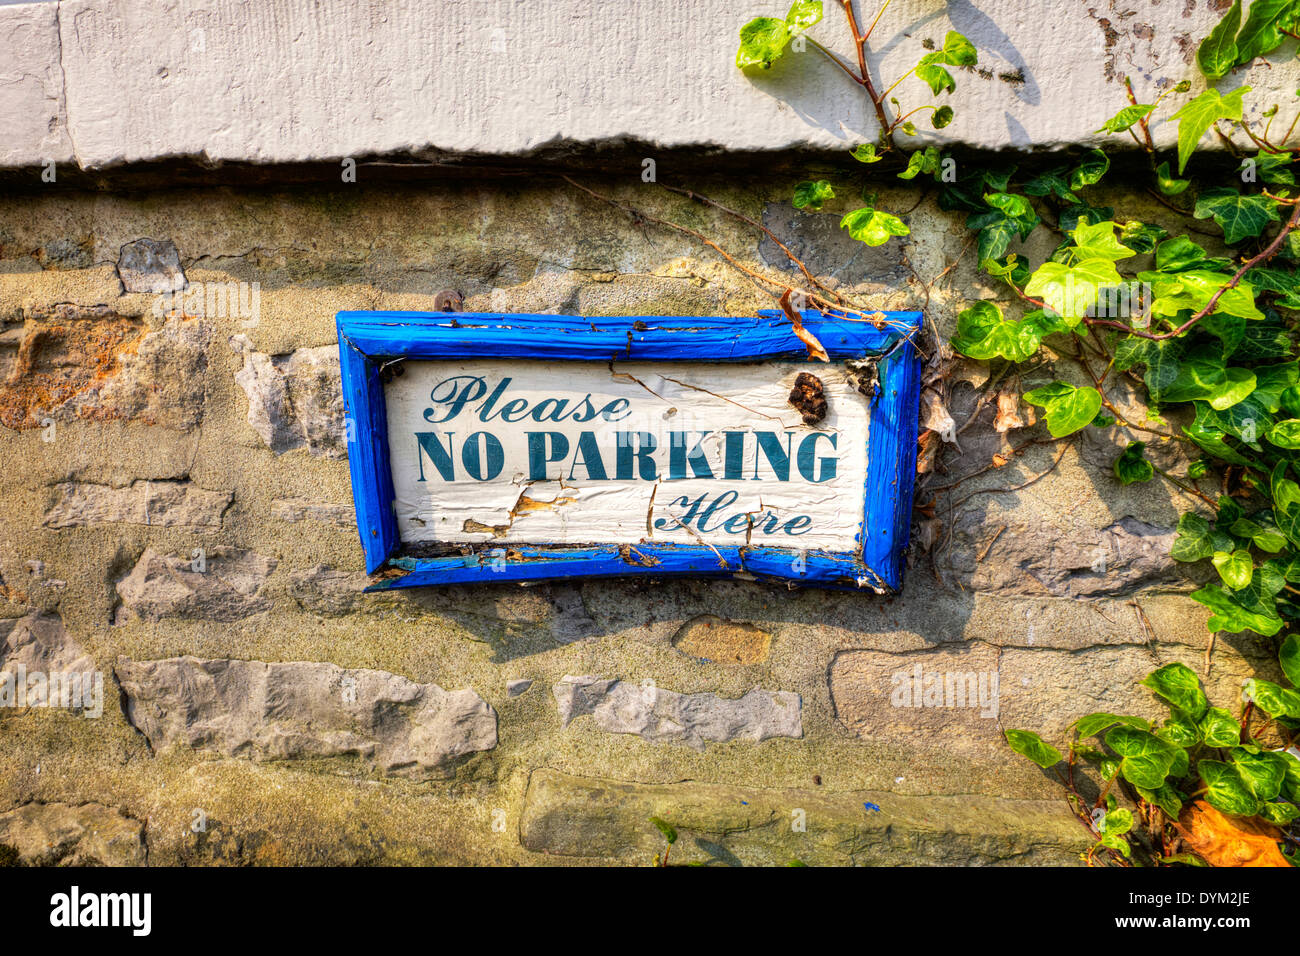 No Parking sign old wood wooden Yorkshire Dales National Park, UK England GB - Stock Image